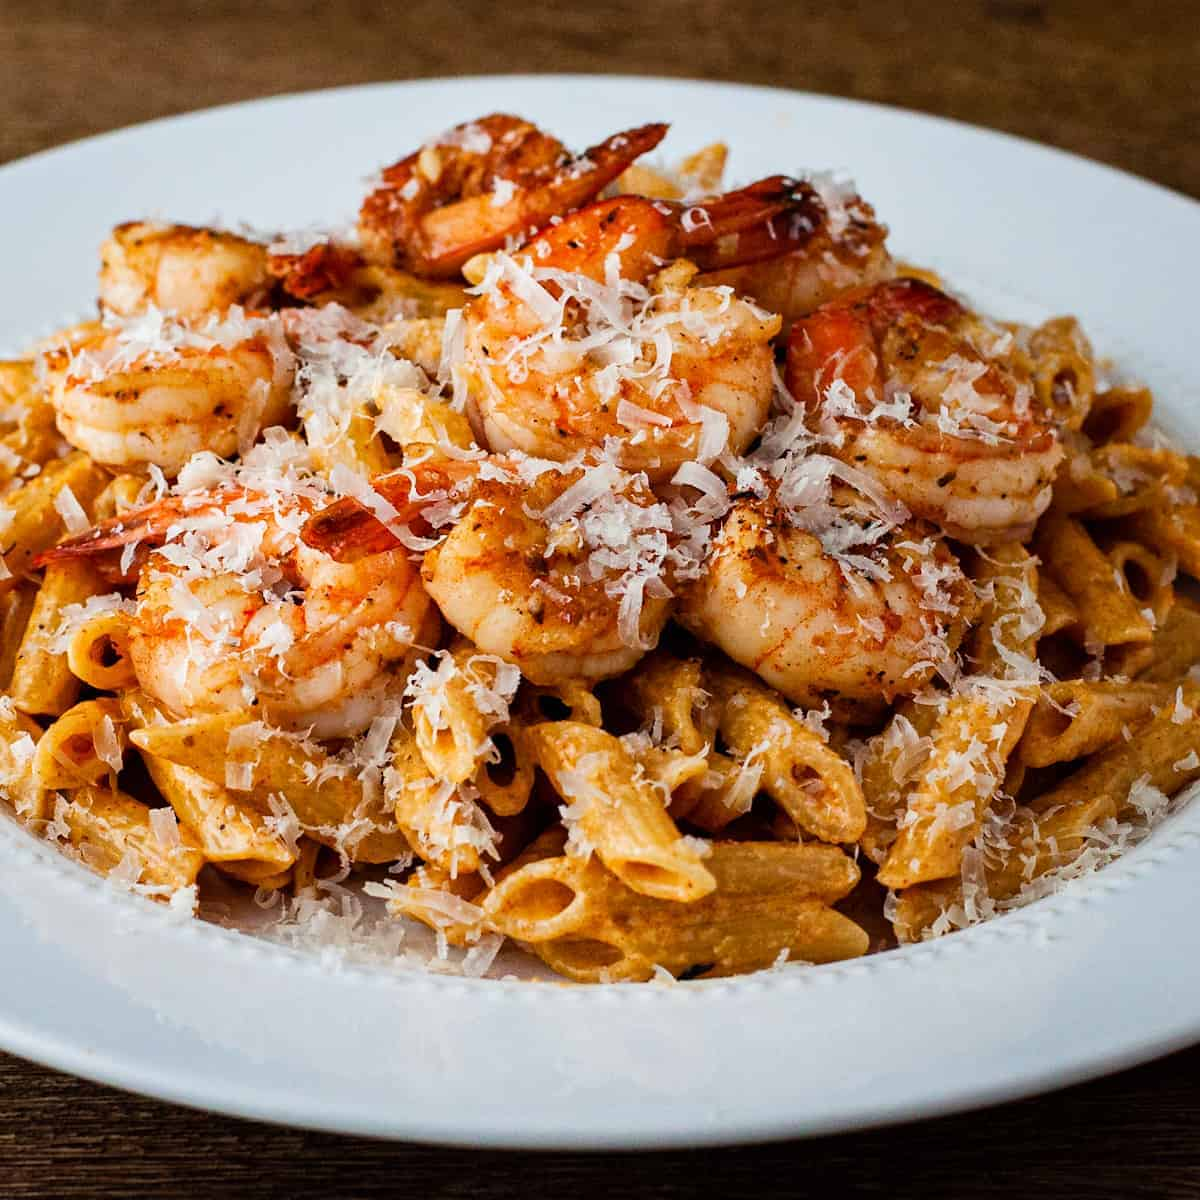 Side angle view of a large plate of creamy Cajun pasta topped with shrimp and grated parmesan cheese.